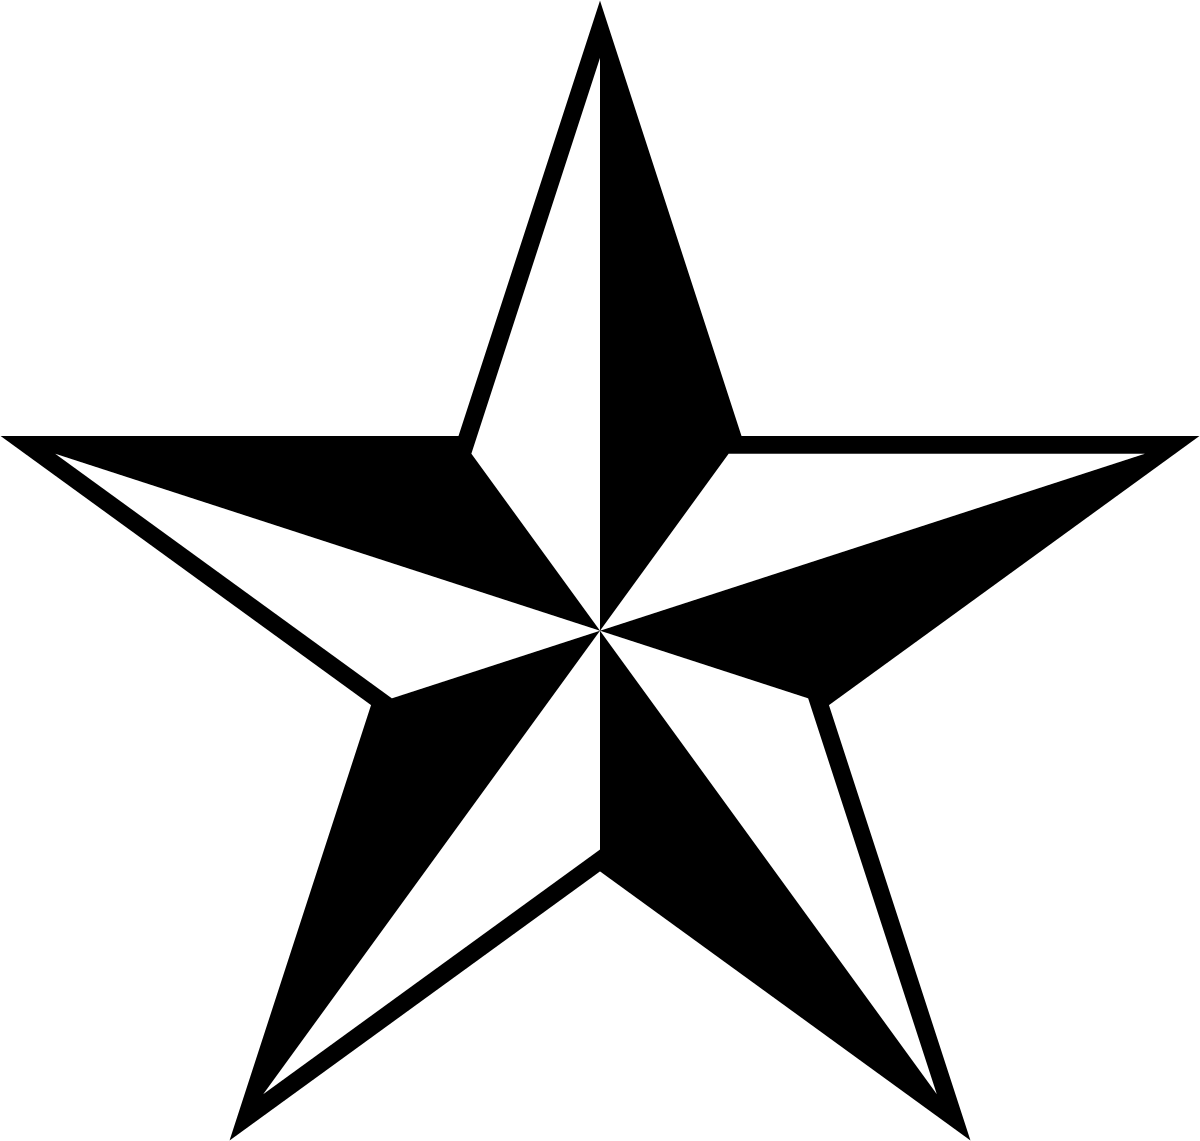 Nautical Star Wikipedia Ideas And Designs